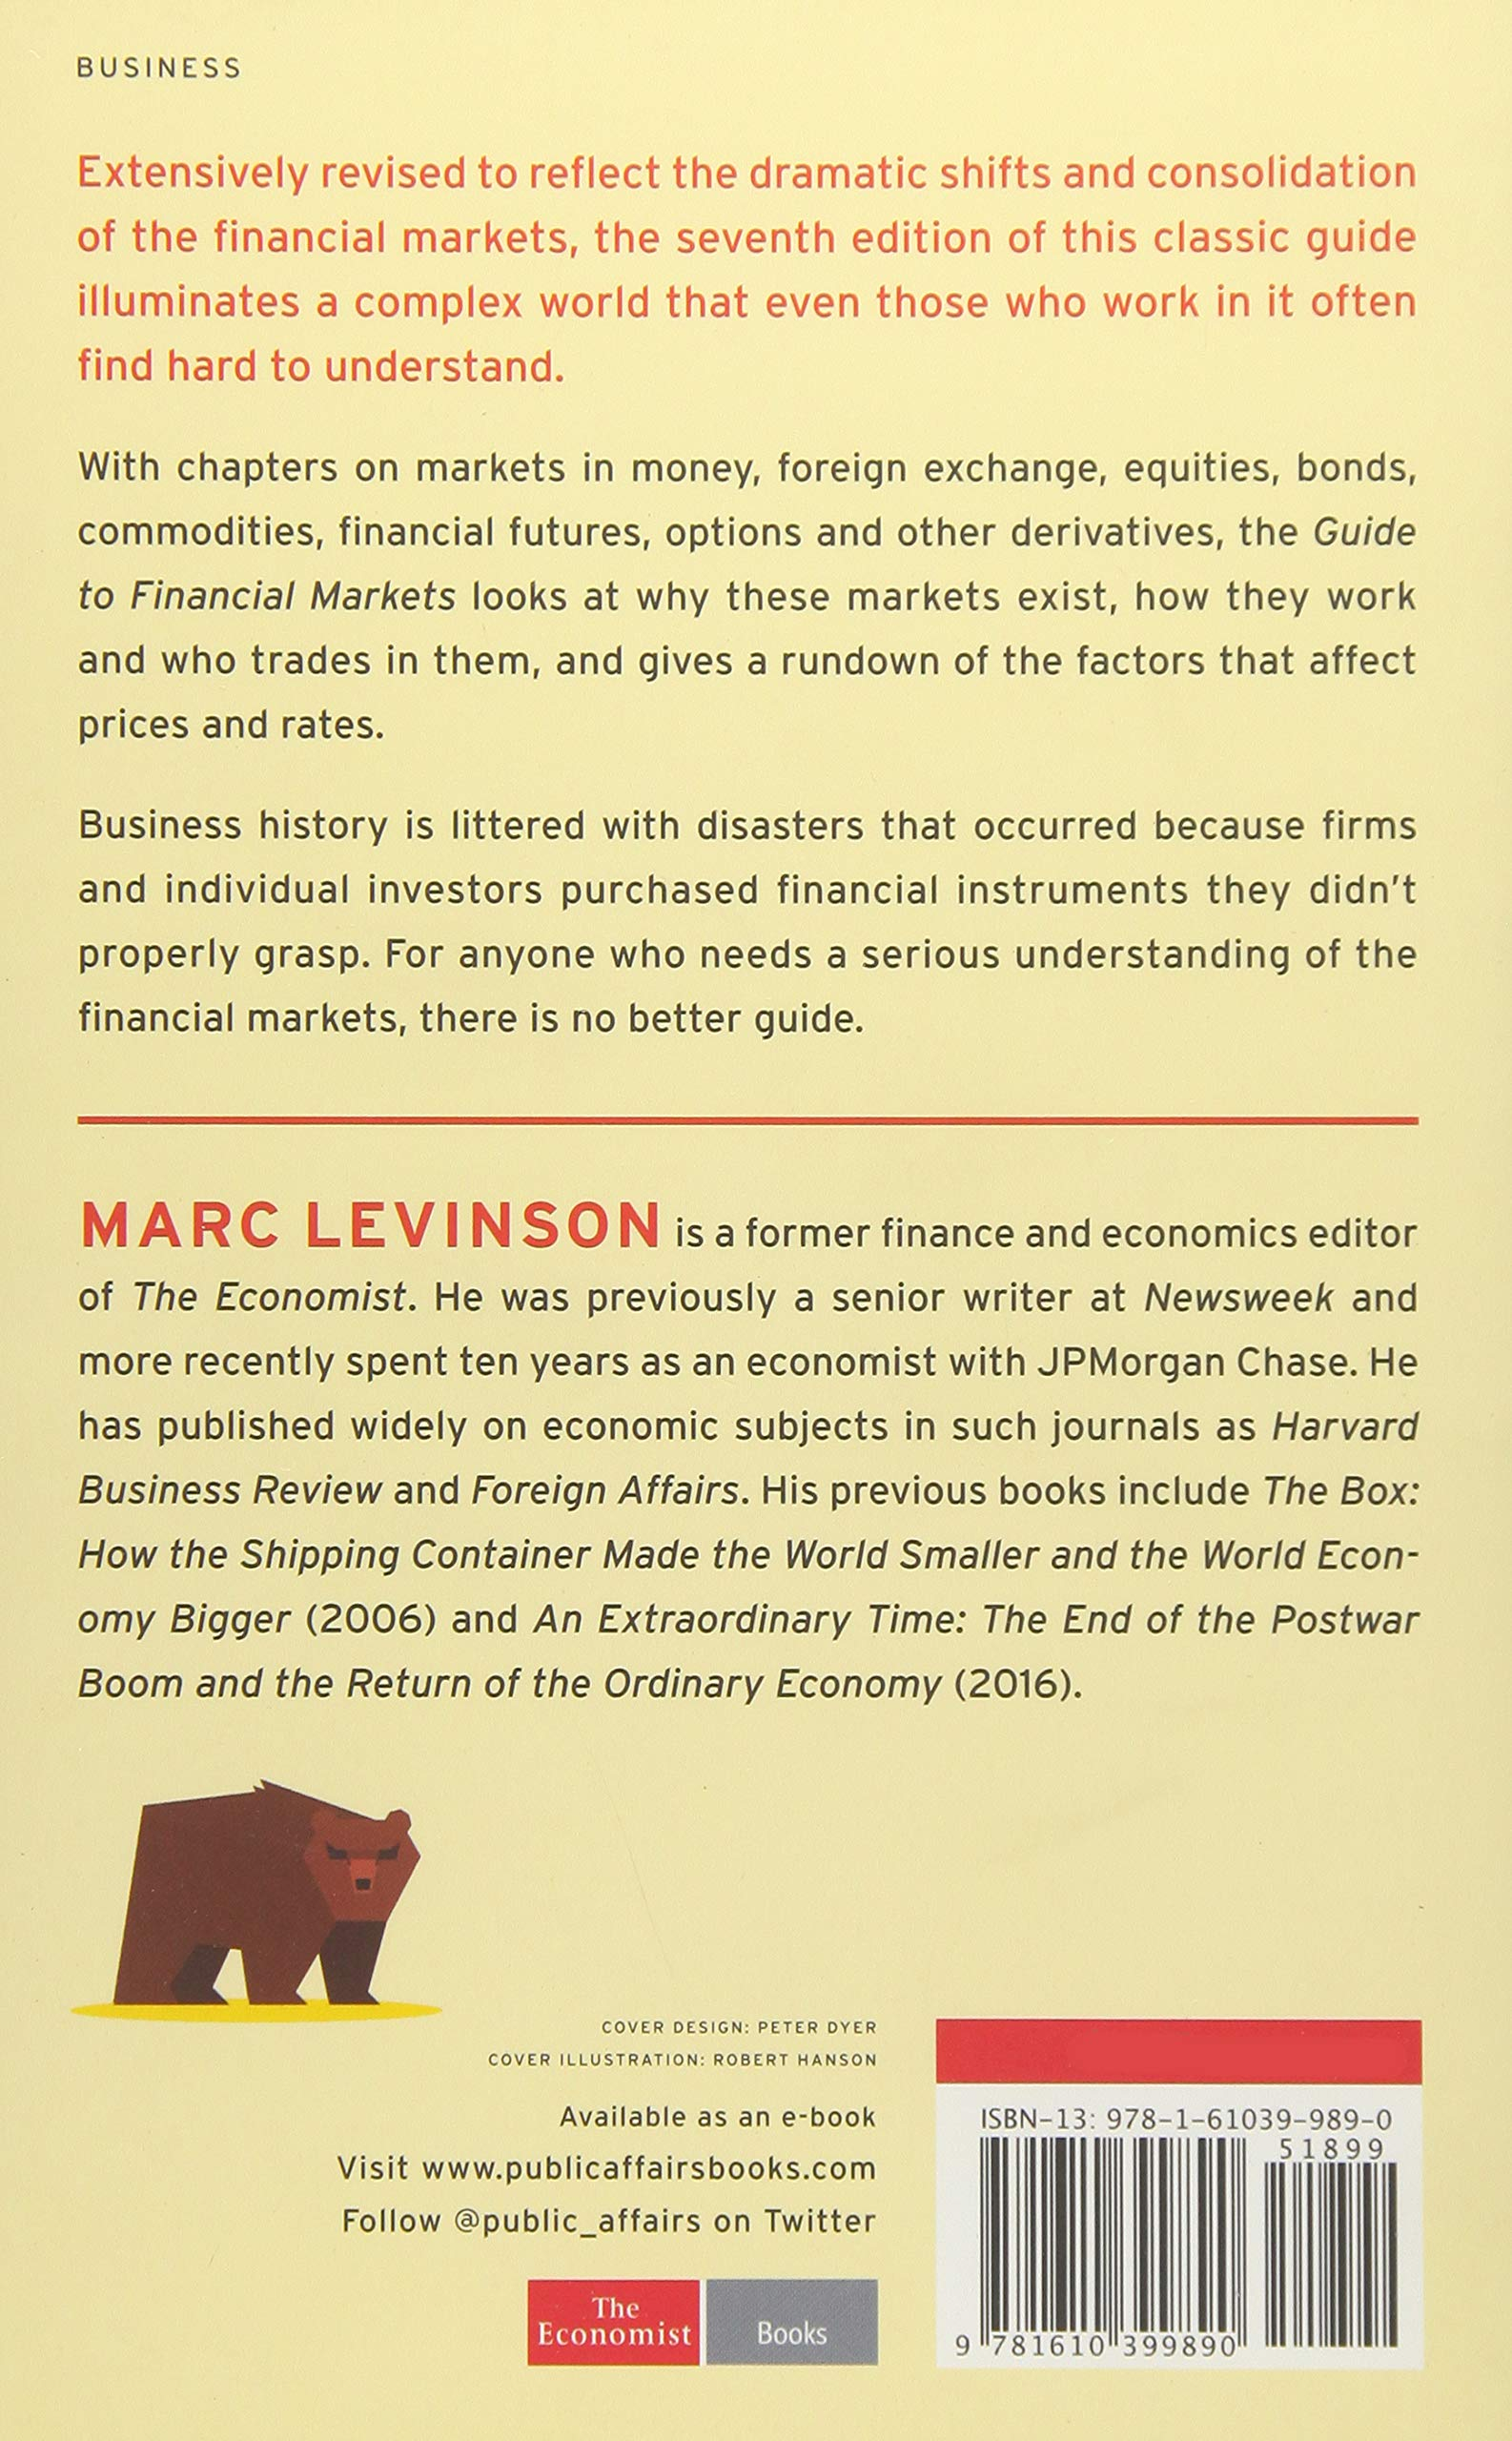 Guide To Financial Markets Why They Exist And How They Work Economist Books The Economist Levinson Marc 9781610399890 Amazon Com Books